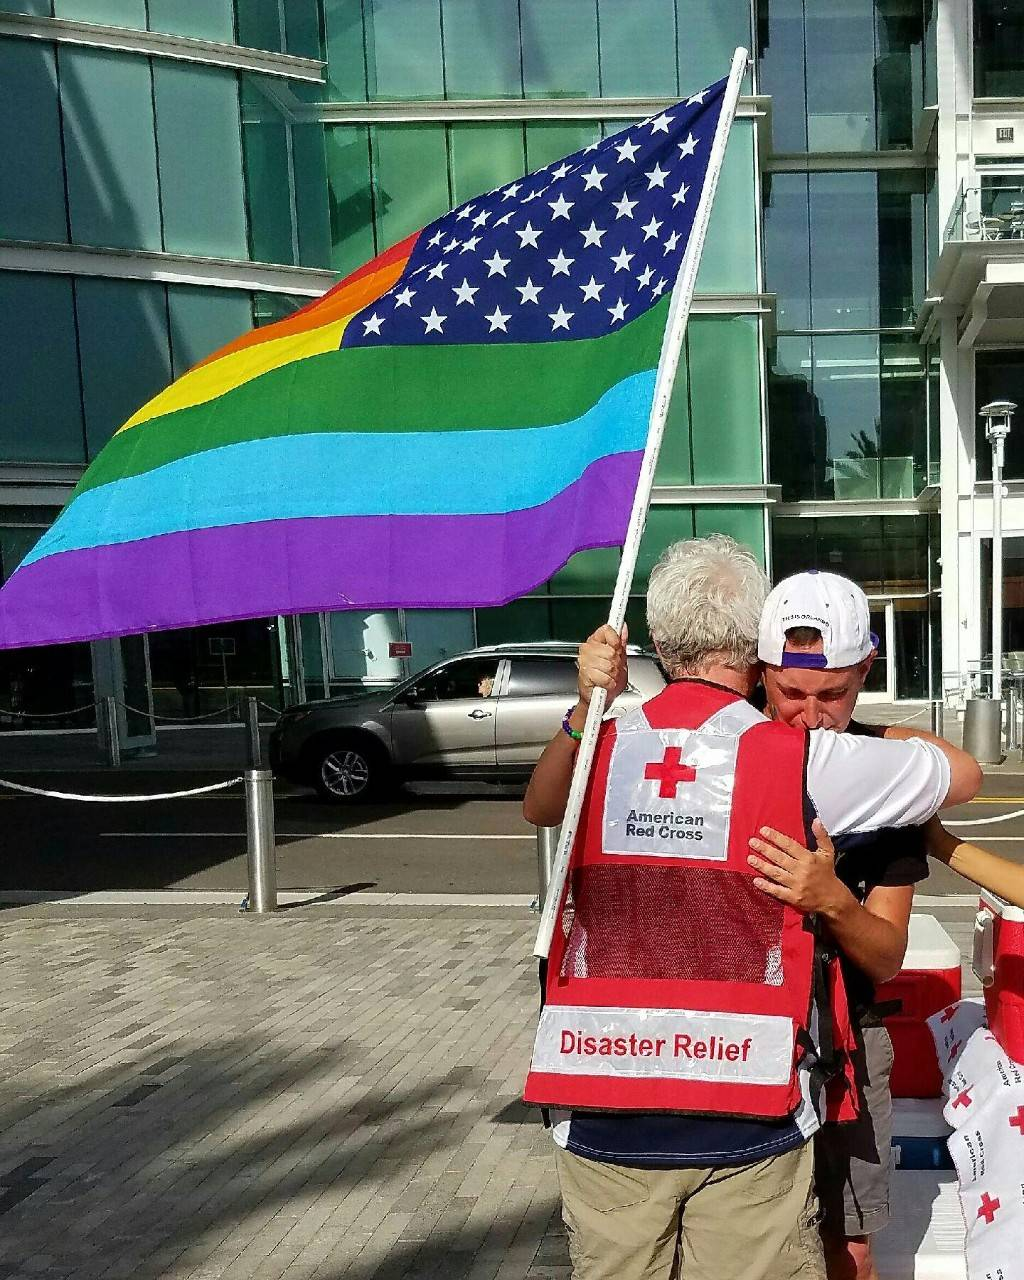 Red Cross: Caring for Each Other After the Orlando Shooting